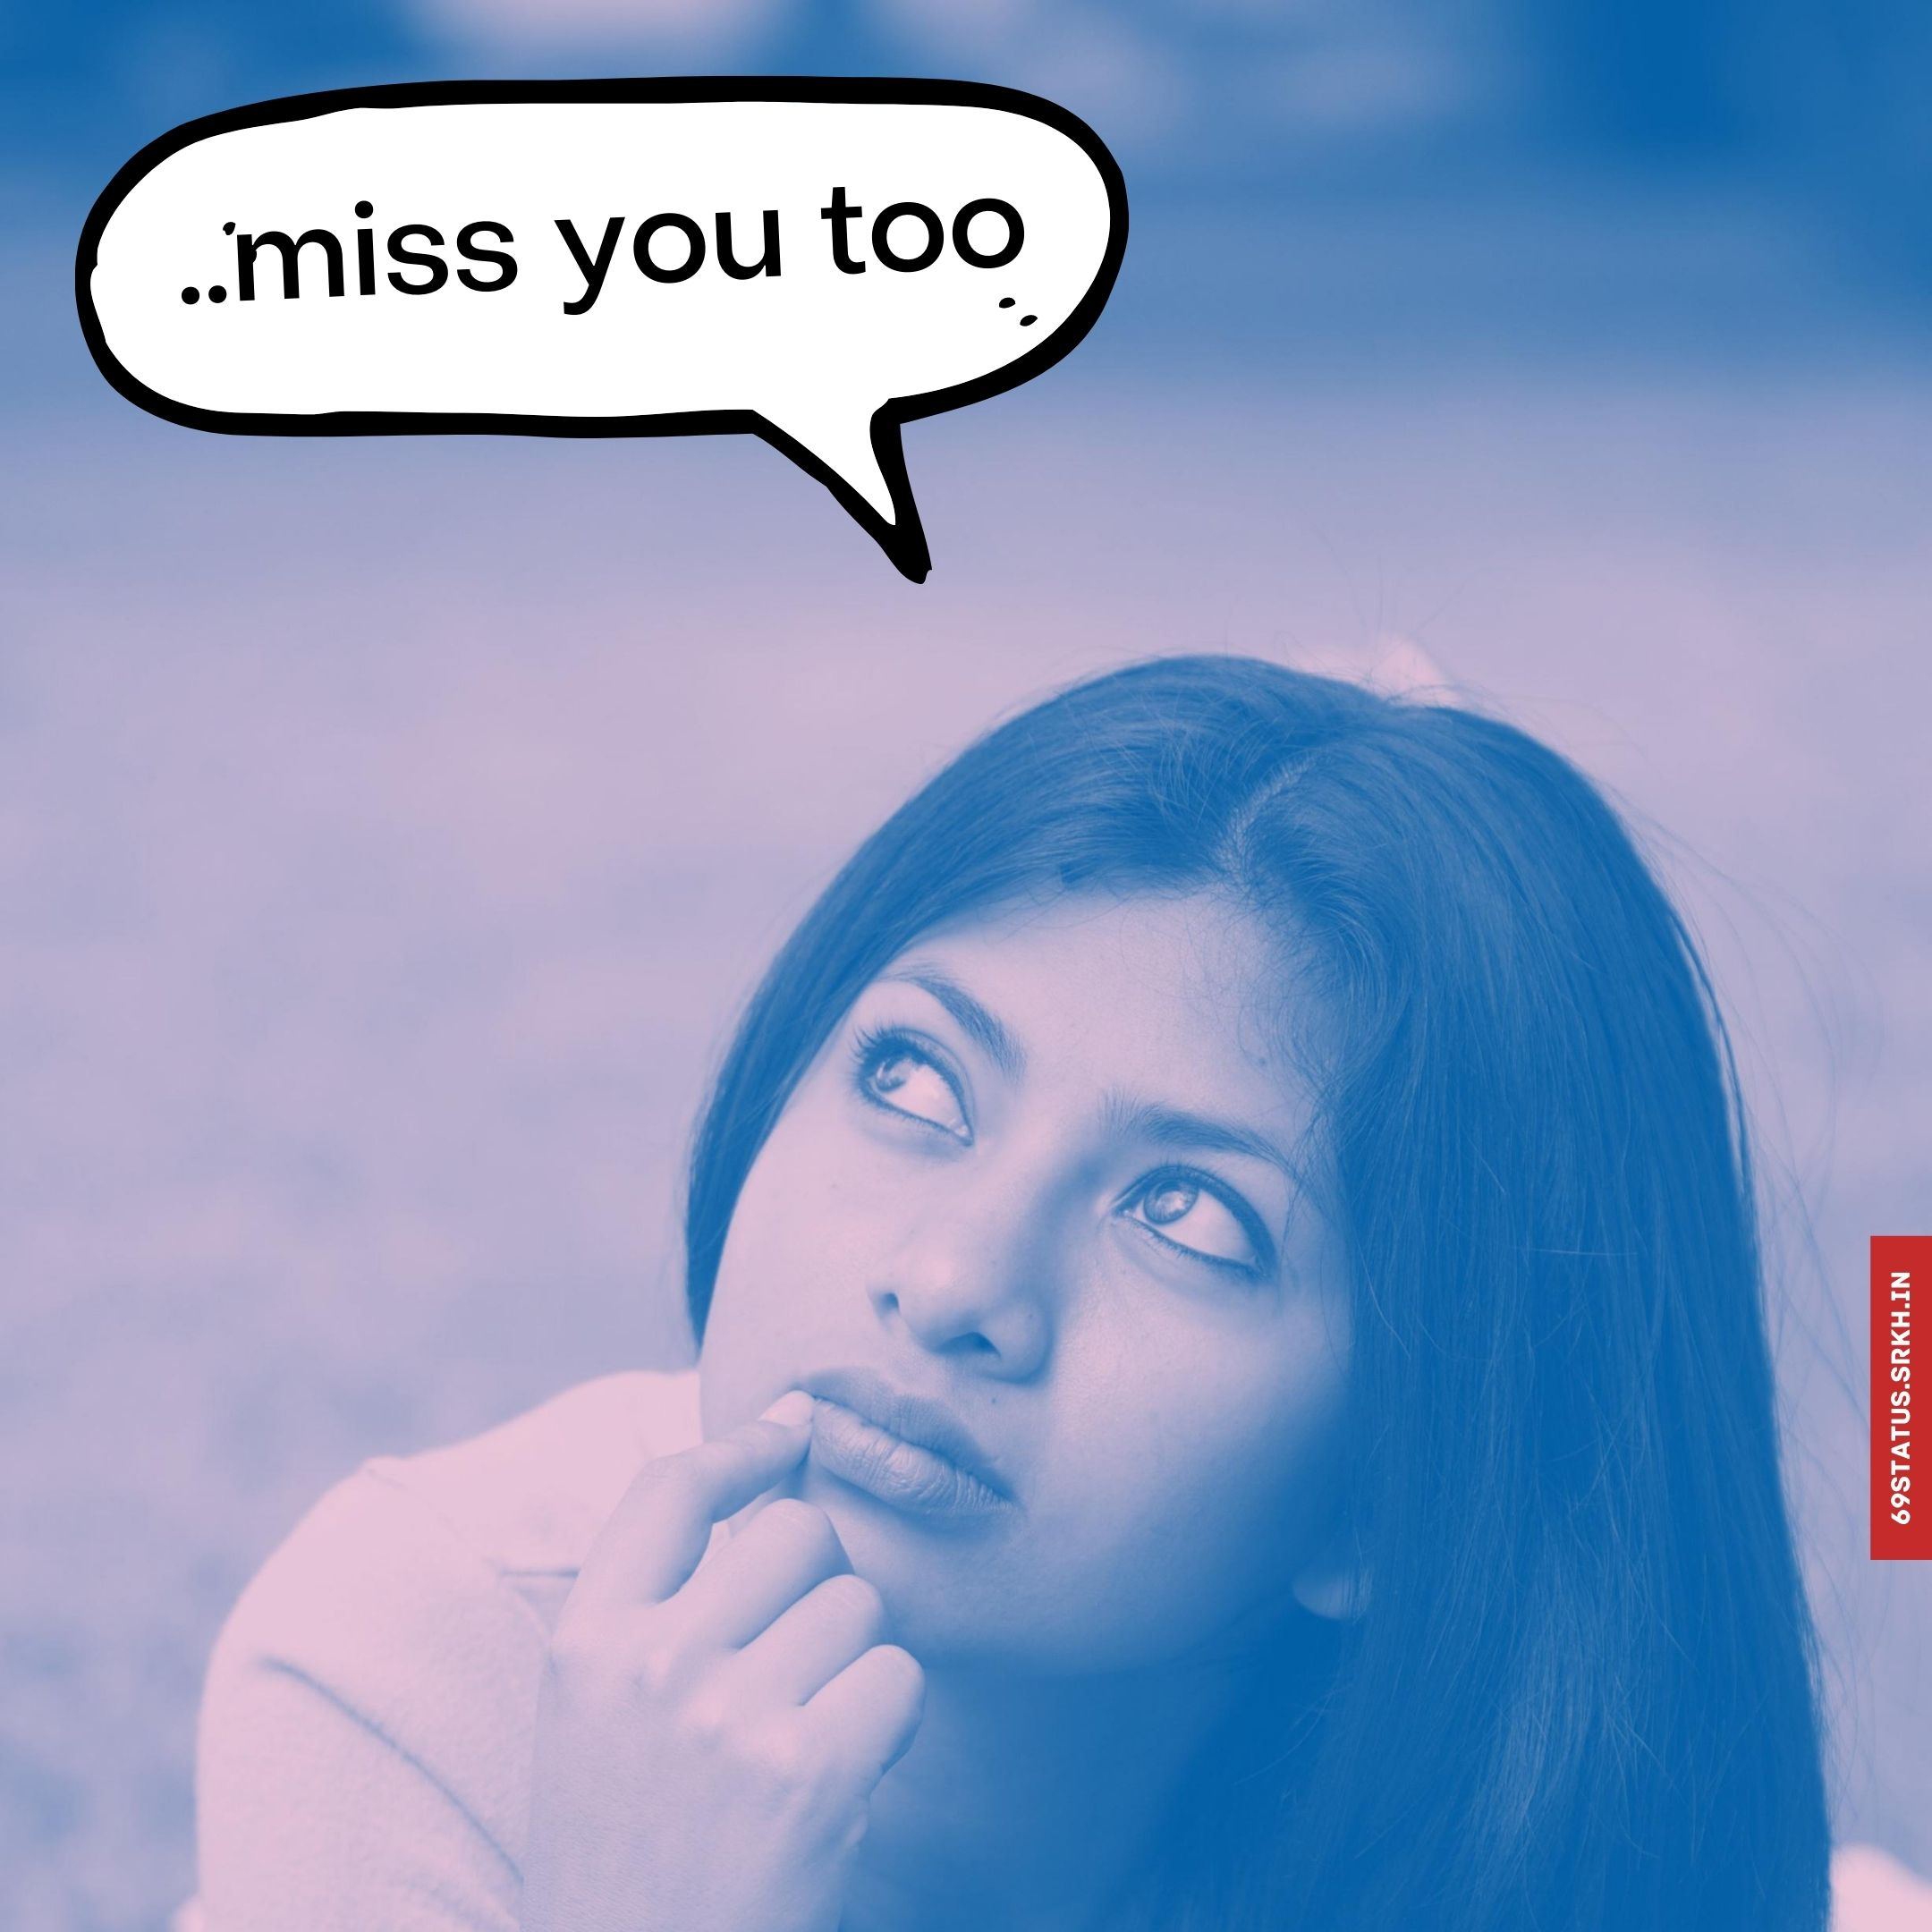 Miss you too image full HD free download.